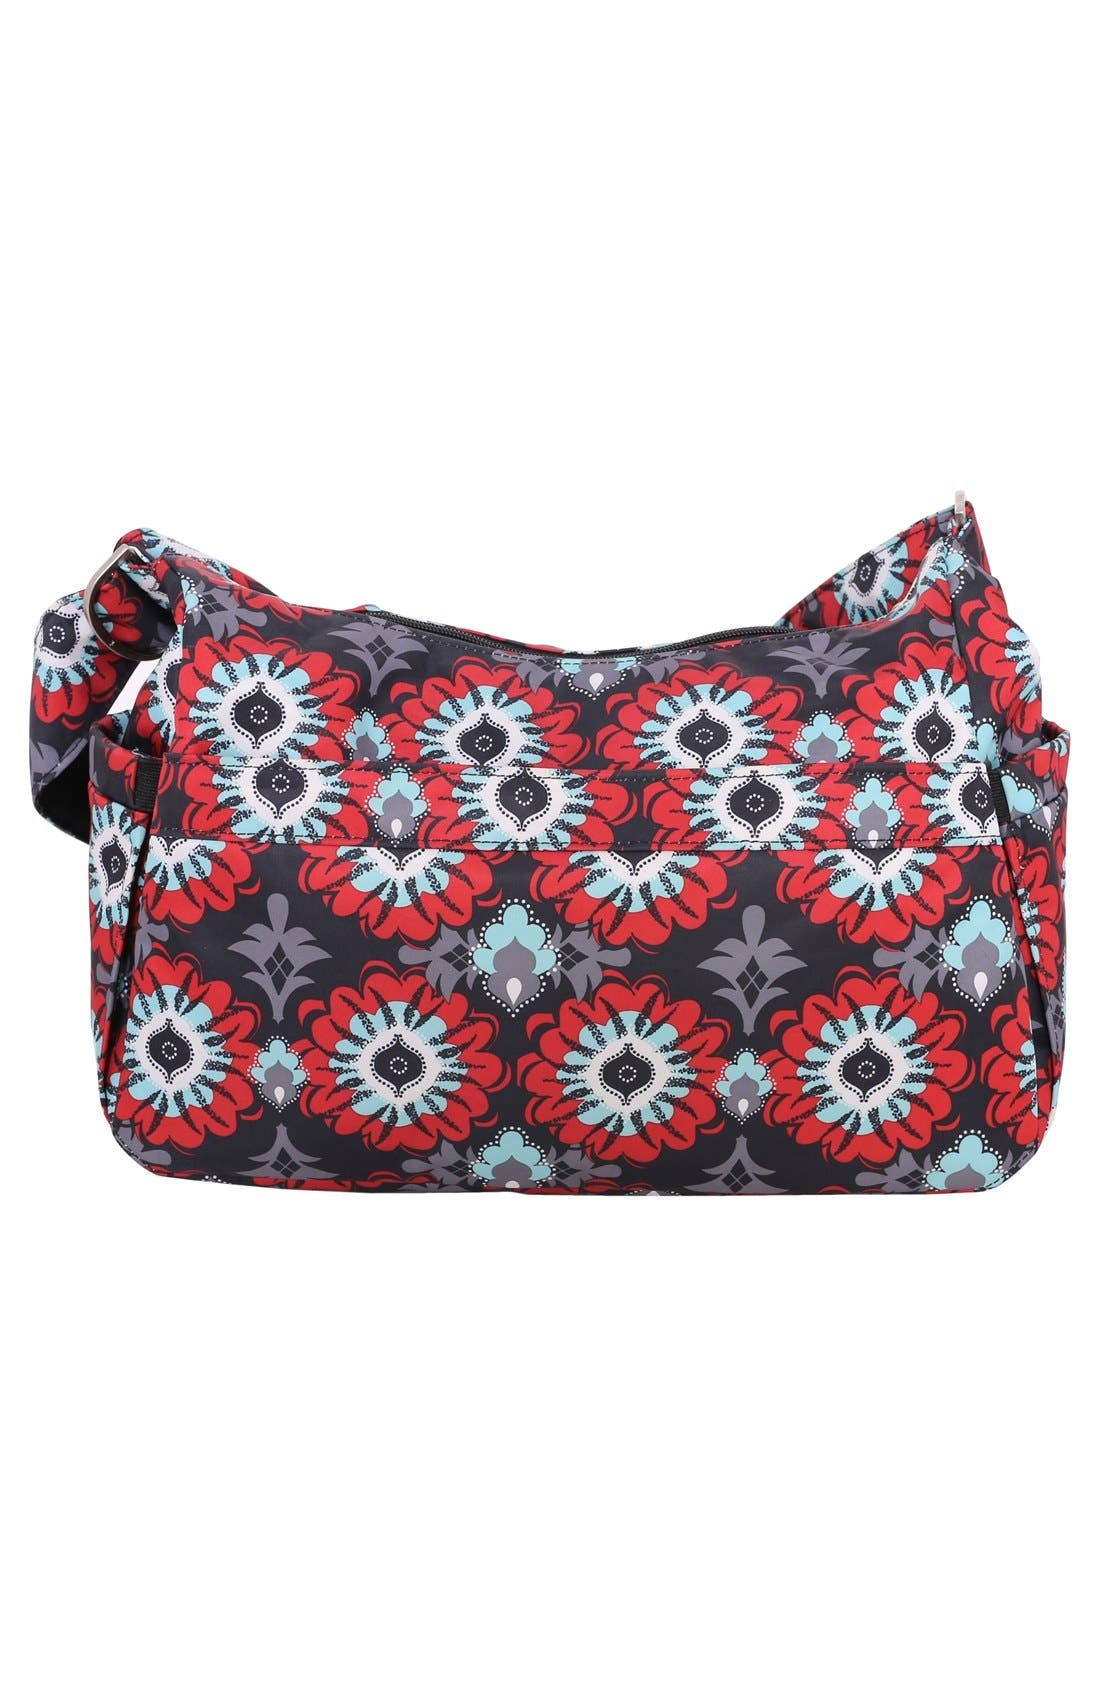 'HoboBe' Diaper Bag,                             Alternate thumbnail 2, color,                             Sweet Scarlet